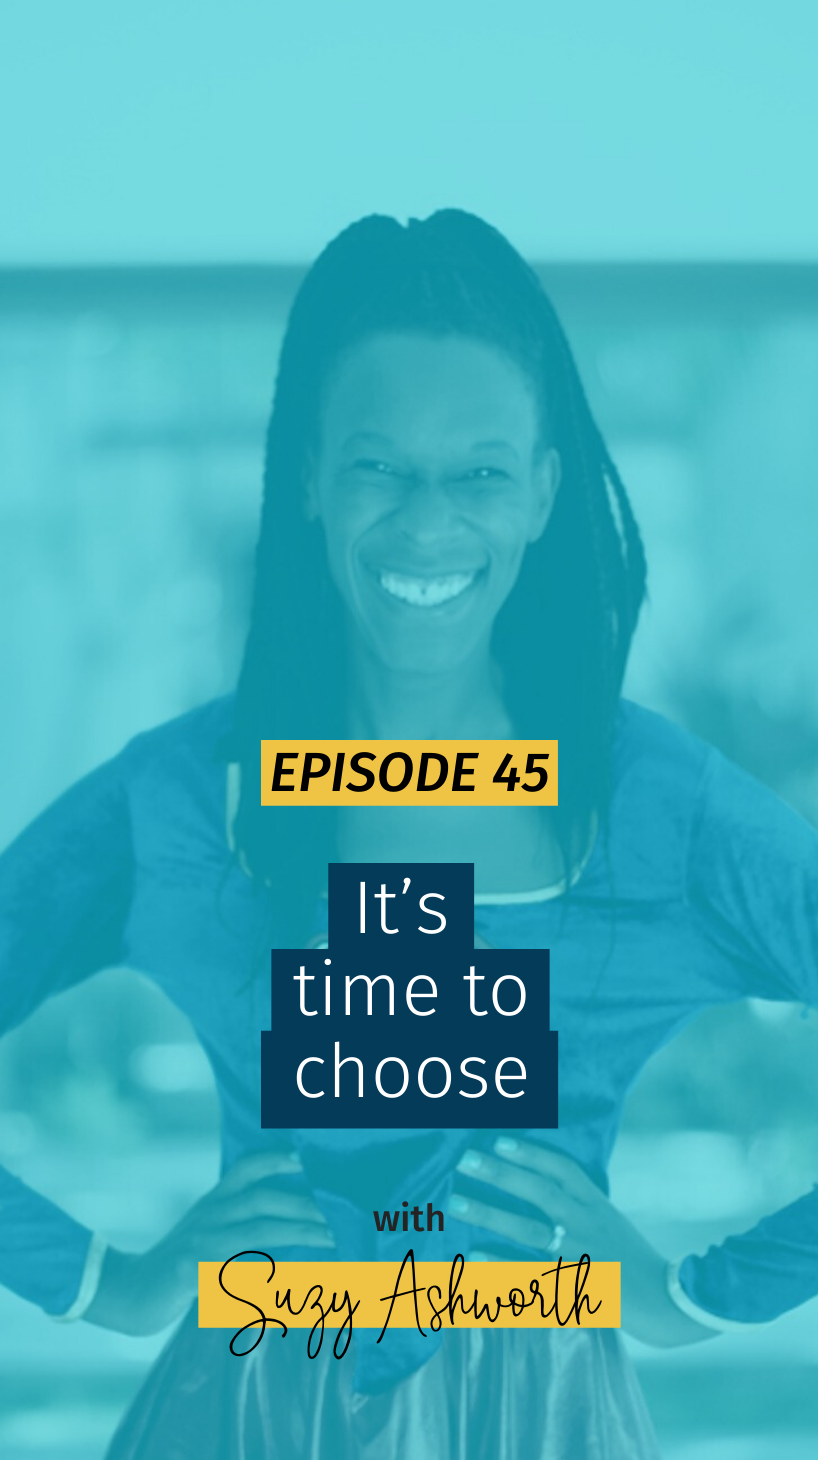 045 It's time to choose